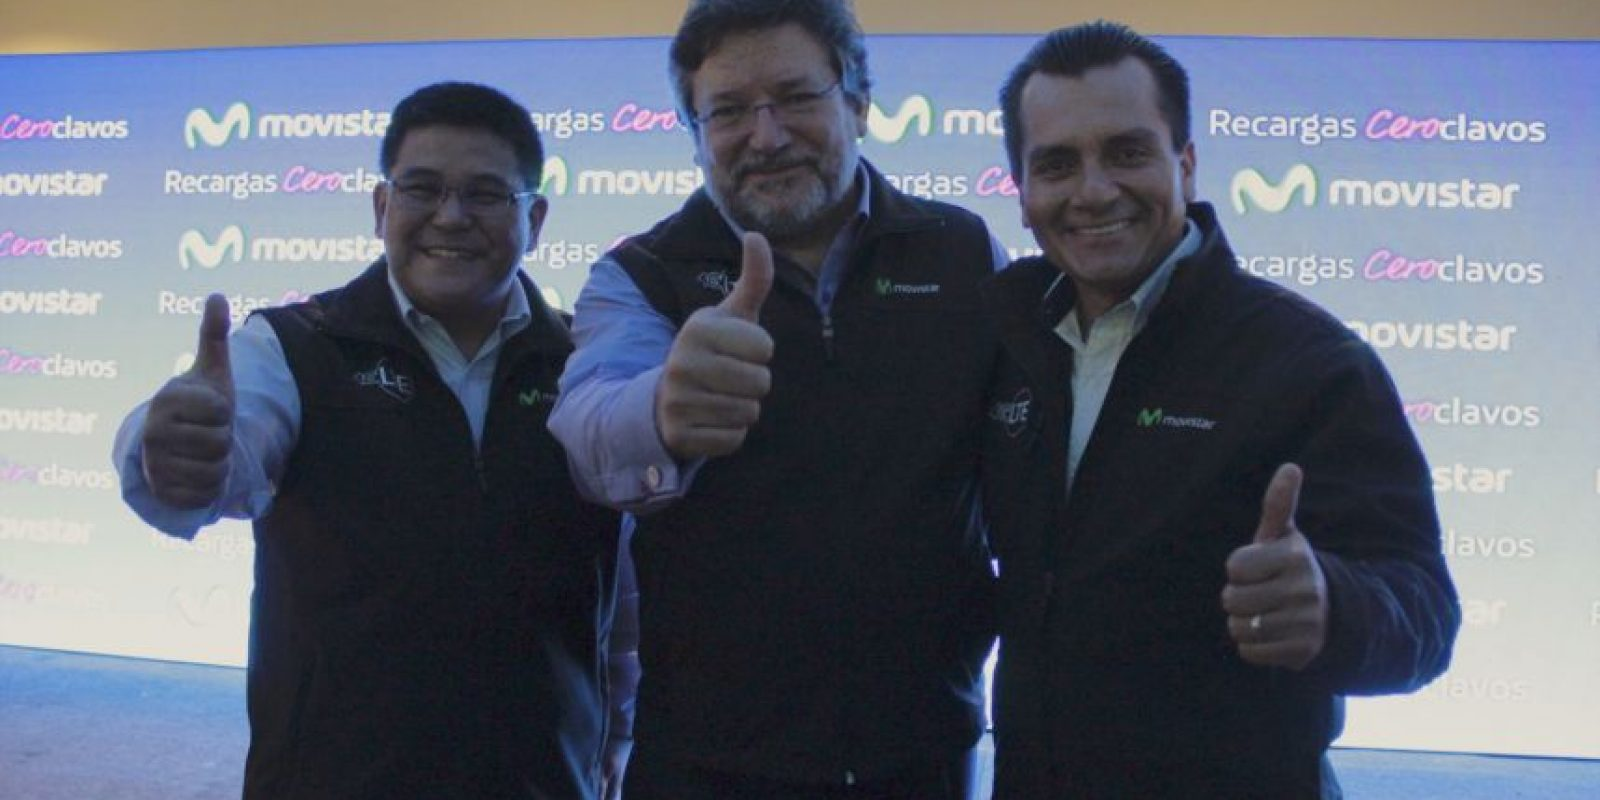 Foto: Cortesía Movistar